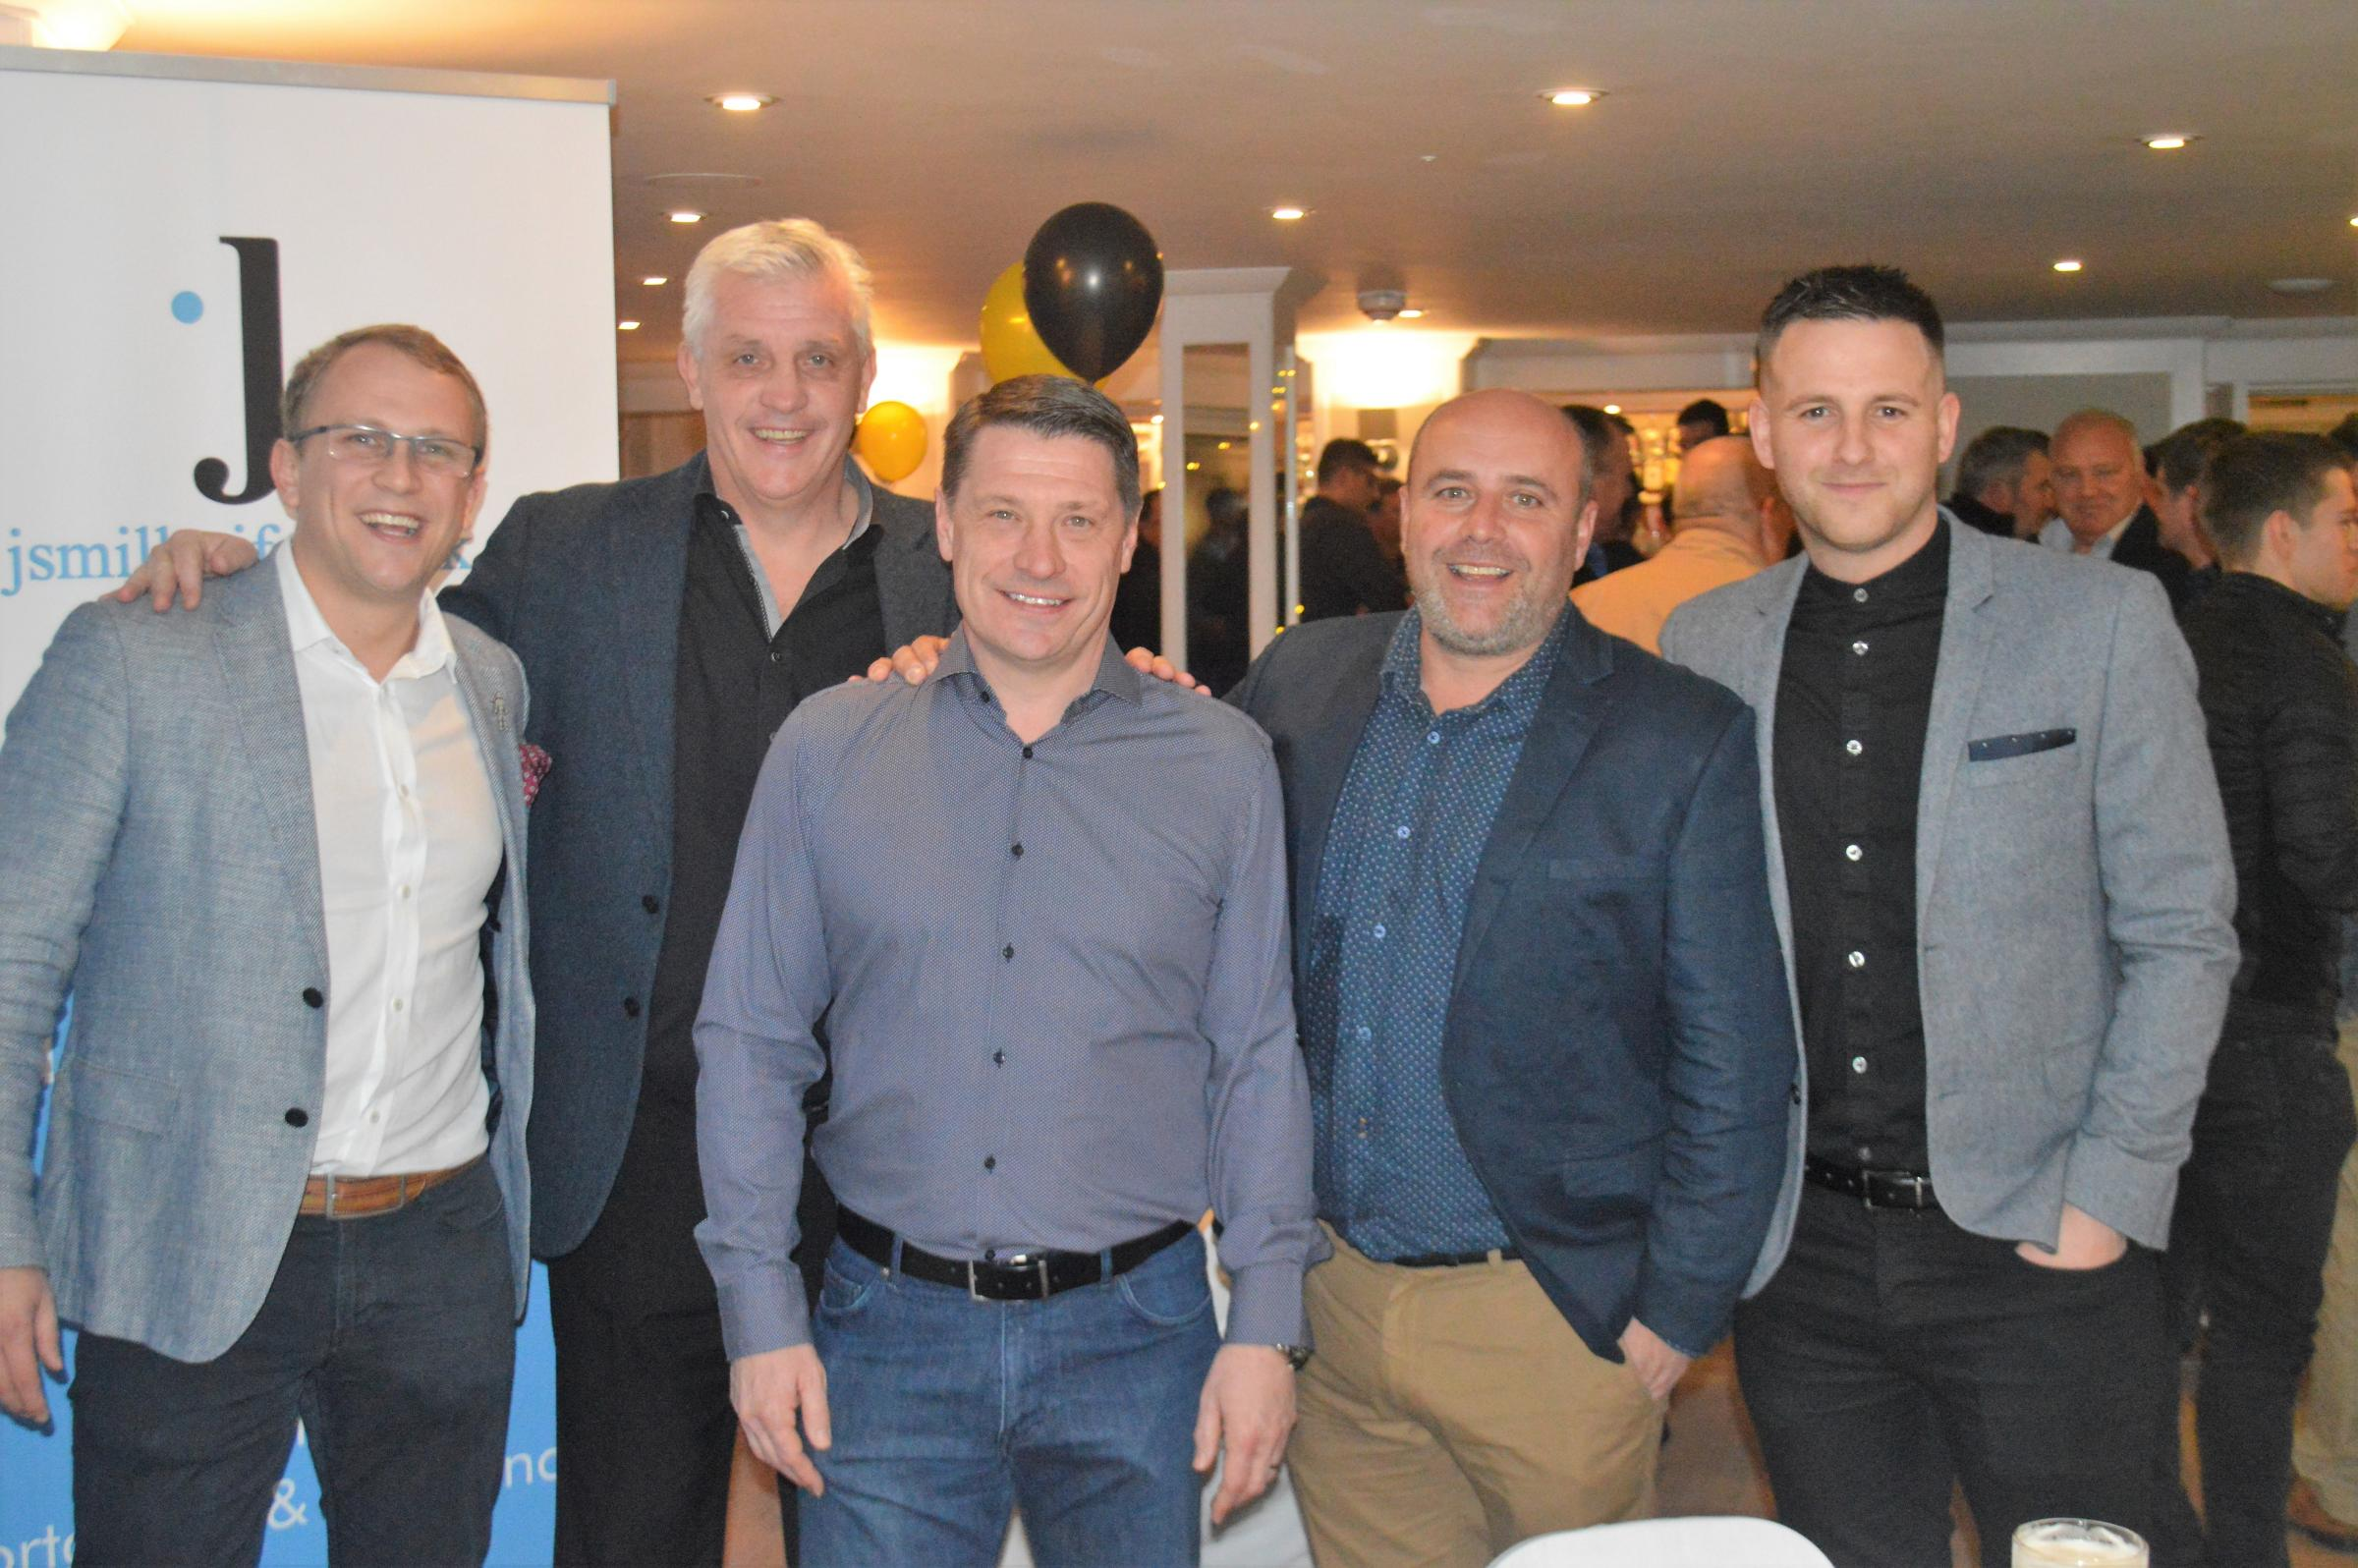 Falmouth Town manager Andrew Westgarth (far right) and assistant manager James Miller (far left), with former professional footballers Tony Gale (second from left) and Tony Cottee (centre)